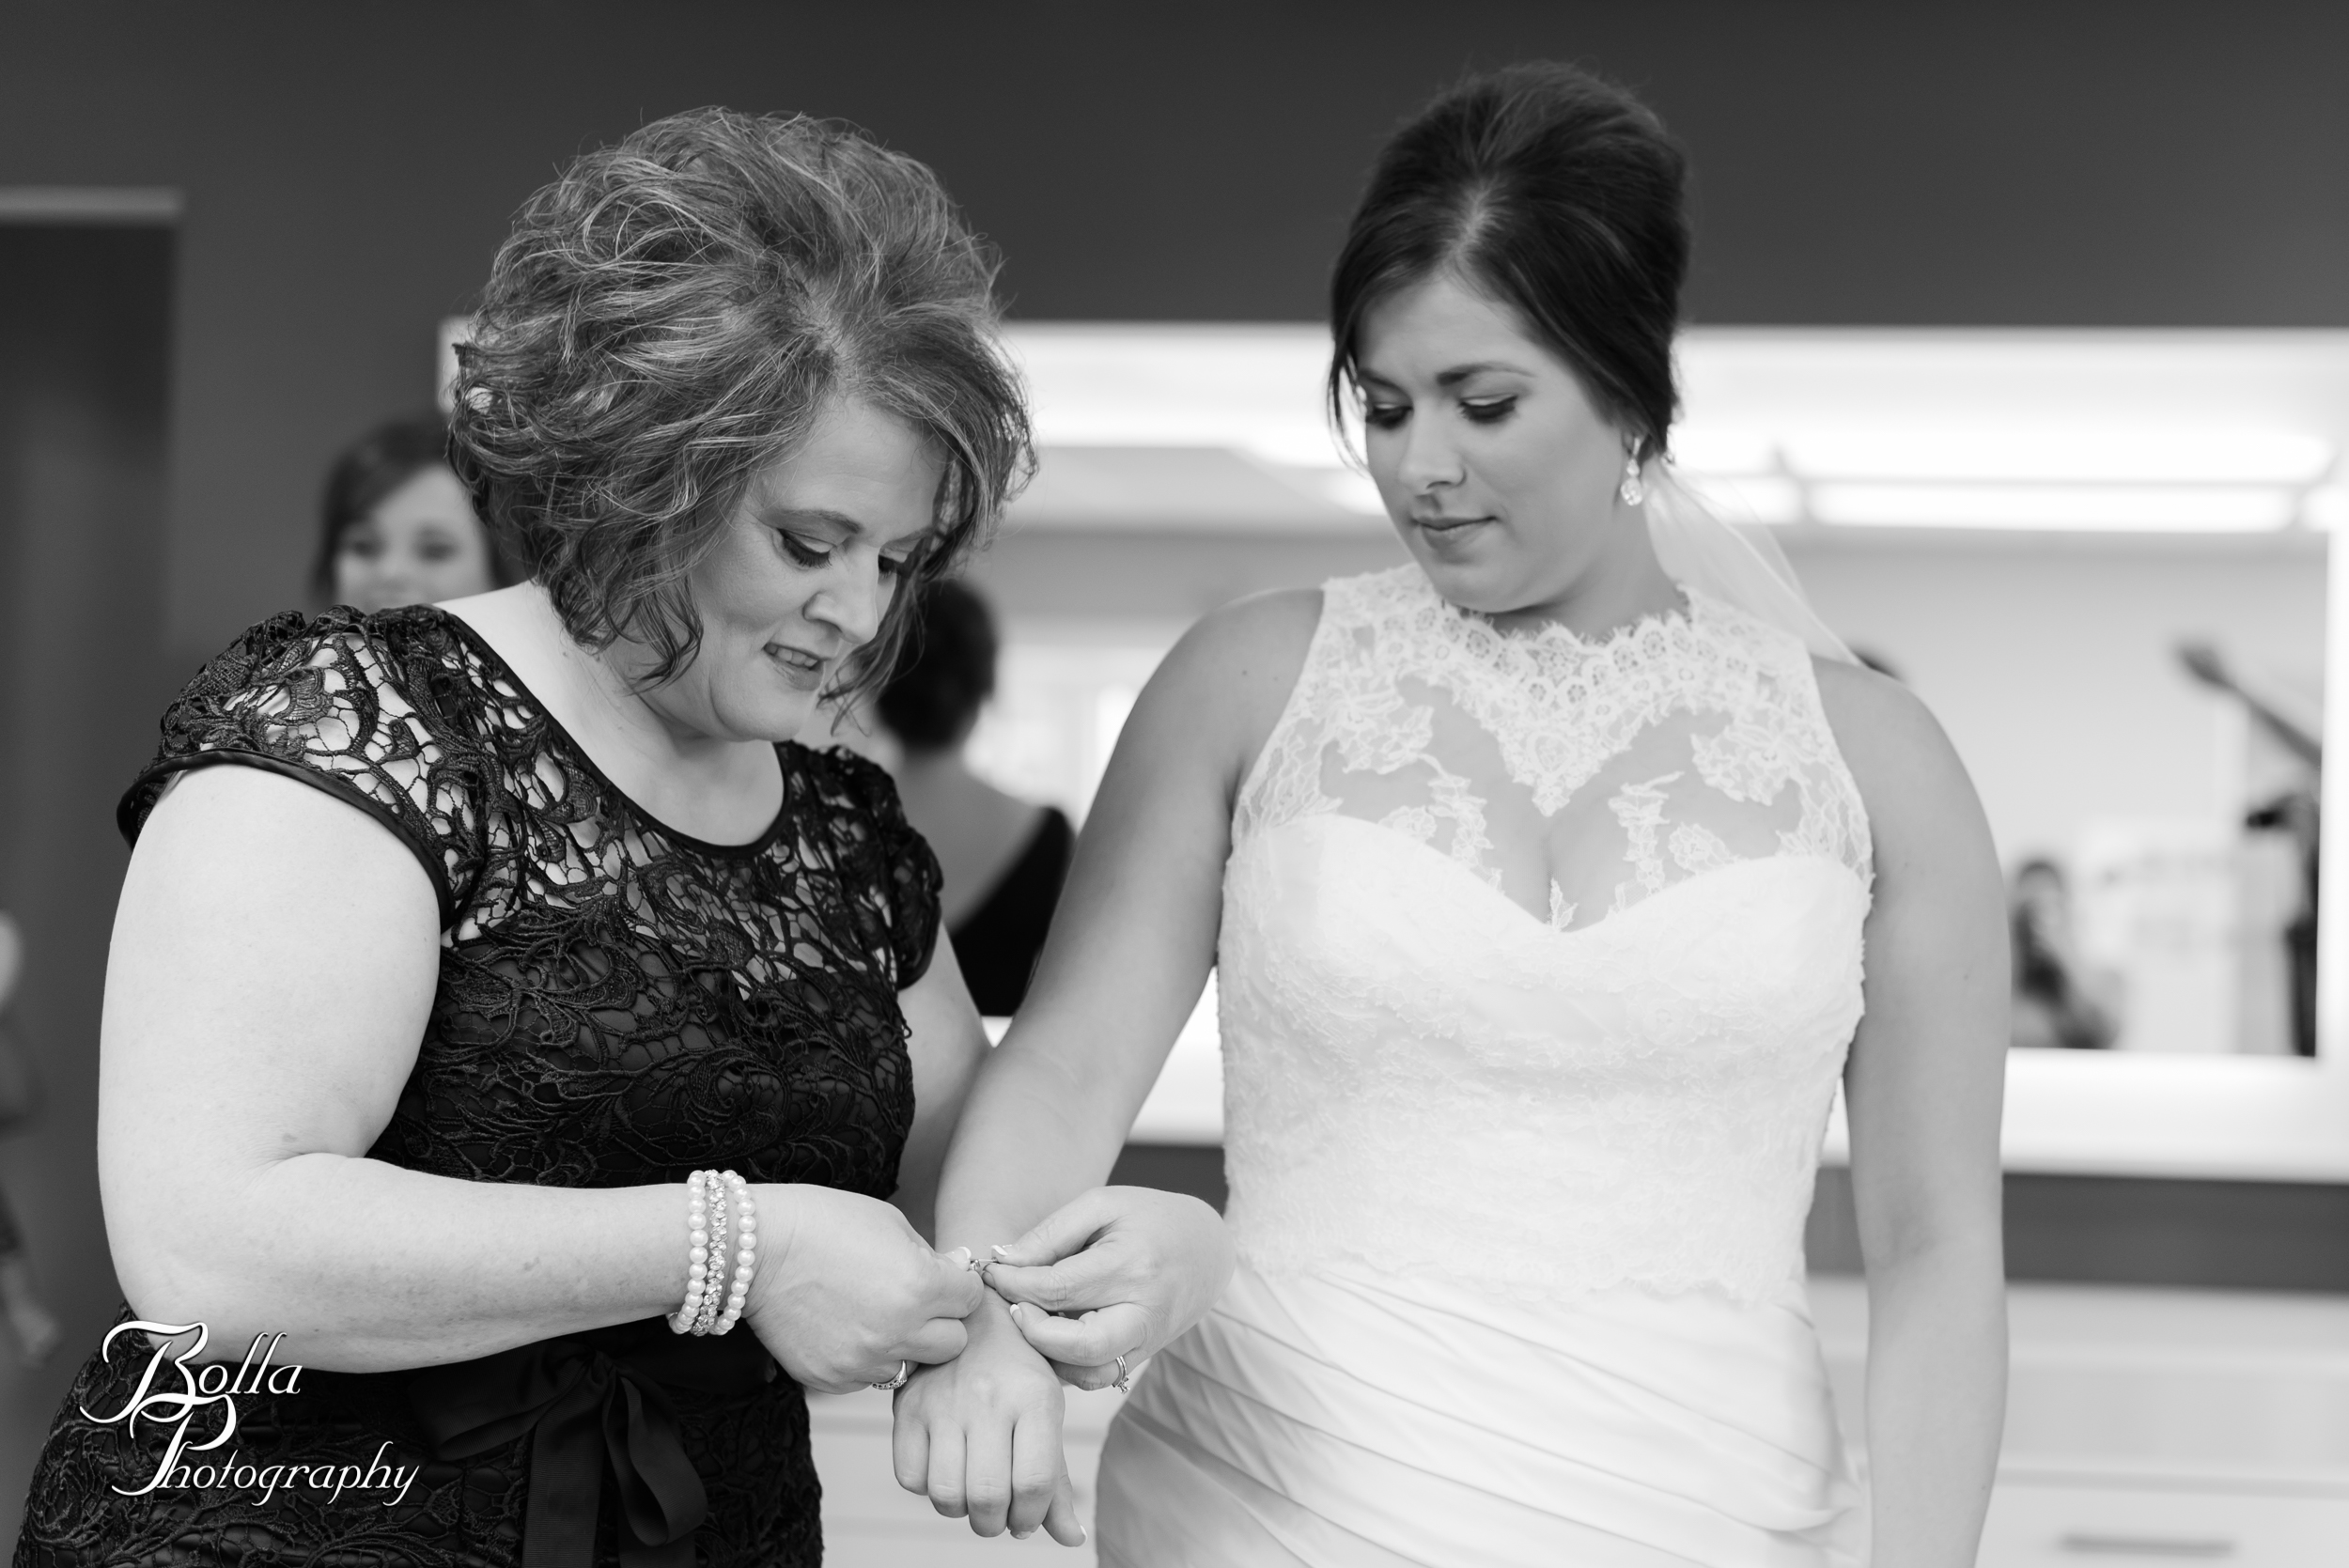 Bolla_photography_edwardsville_wedding_photographer_st_louis_weddings_Heinzmann-0069.jpg